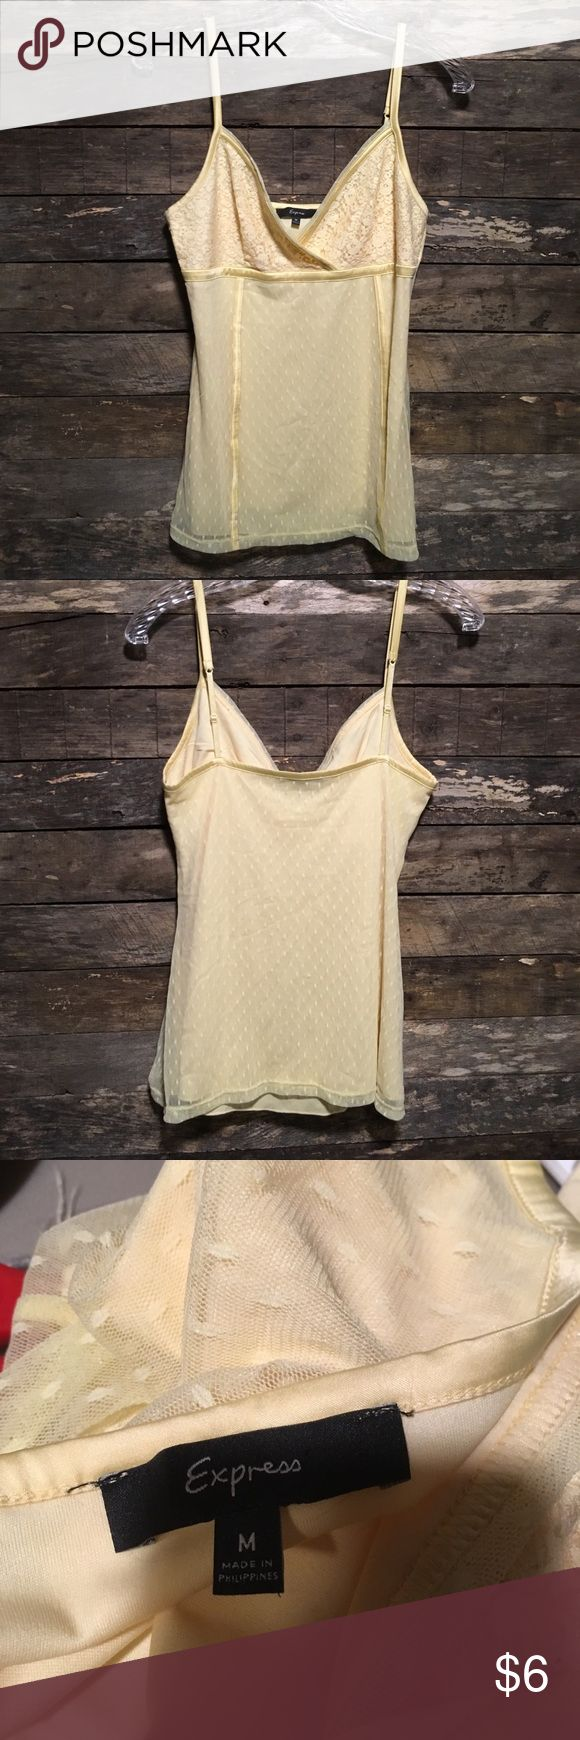 Express Yellow Cami Top All items are in gently worn condition with no stains, tears, or other noted flaws unless otherwise stated. Top is lined and can be worn with or without a jacket. From a smoke-free home. Please don't hesitate to make an offer. Bundle for private offers. Same or next day shipping unless work or travel prohibits. Express Tops